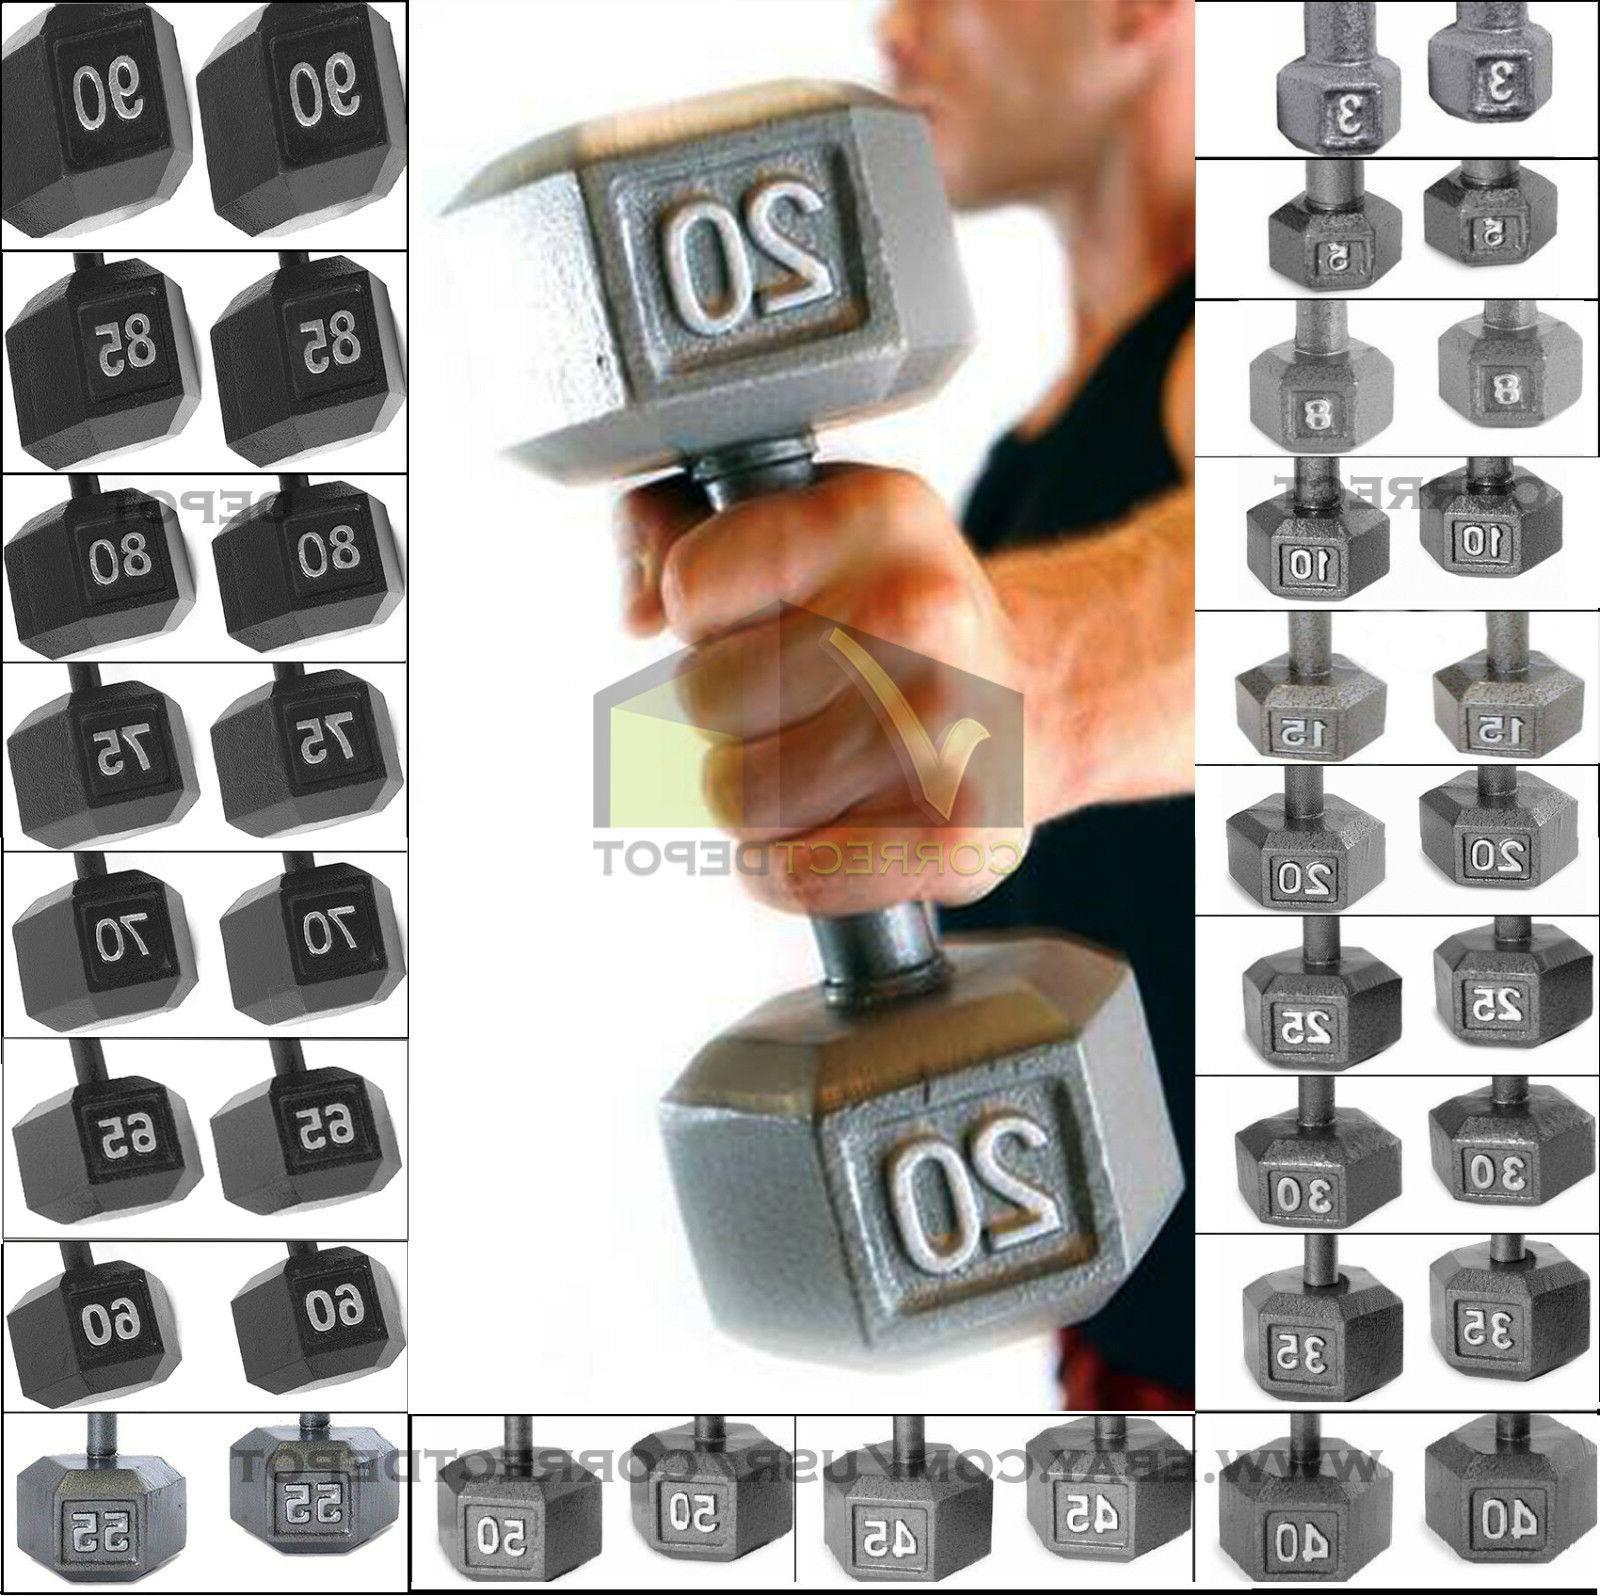 SET IRON DUMBBELLS Home Gym Workout Weights